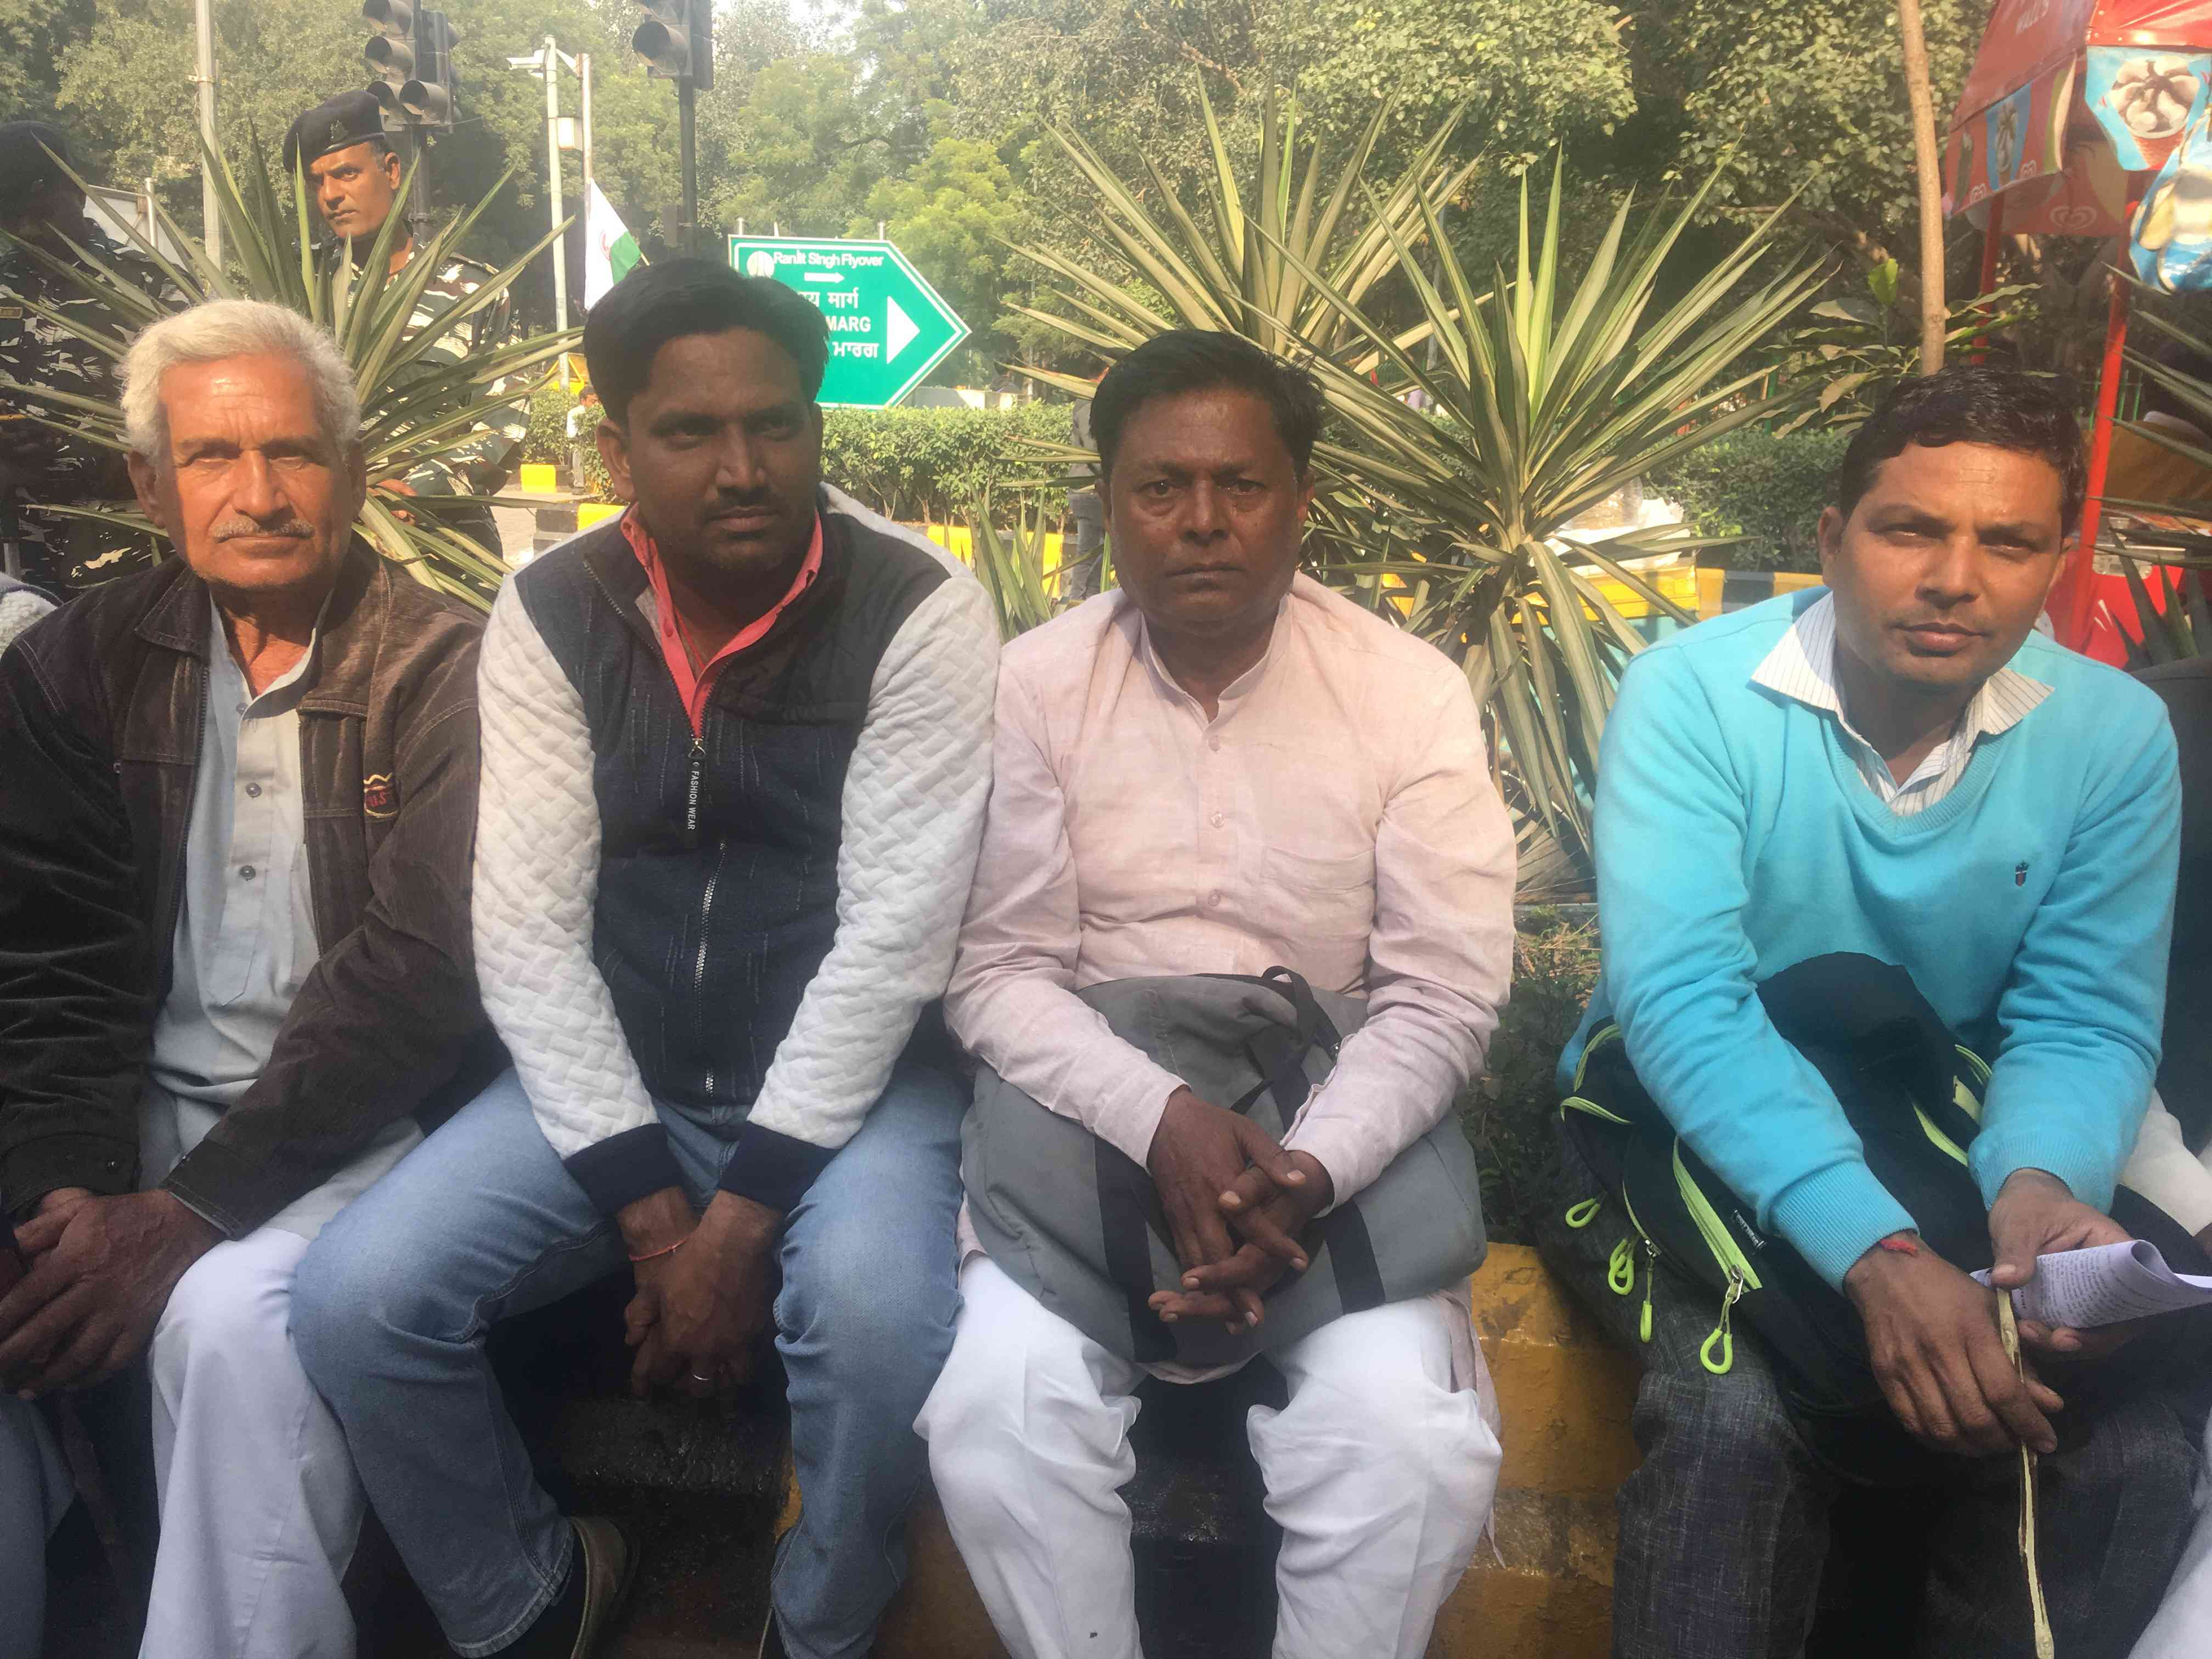 Vijendar Kumar (second from right) and other farmers from Haridwar say they have not received payments from the government for their sugarcane for two years now.